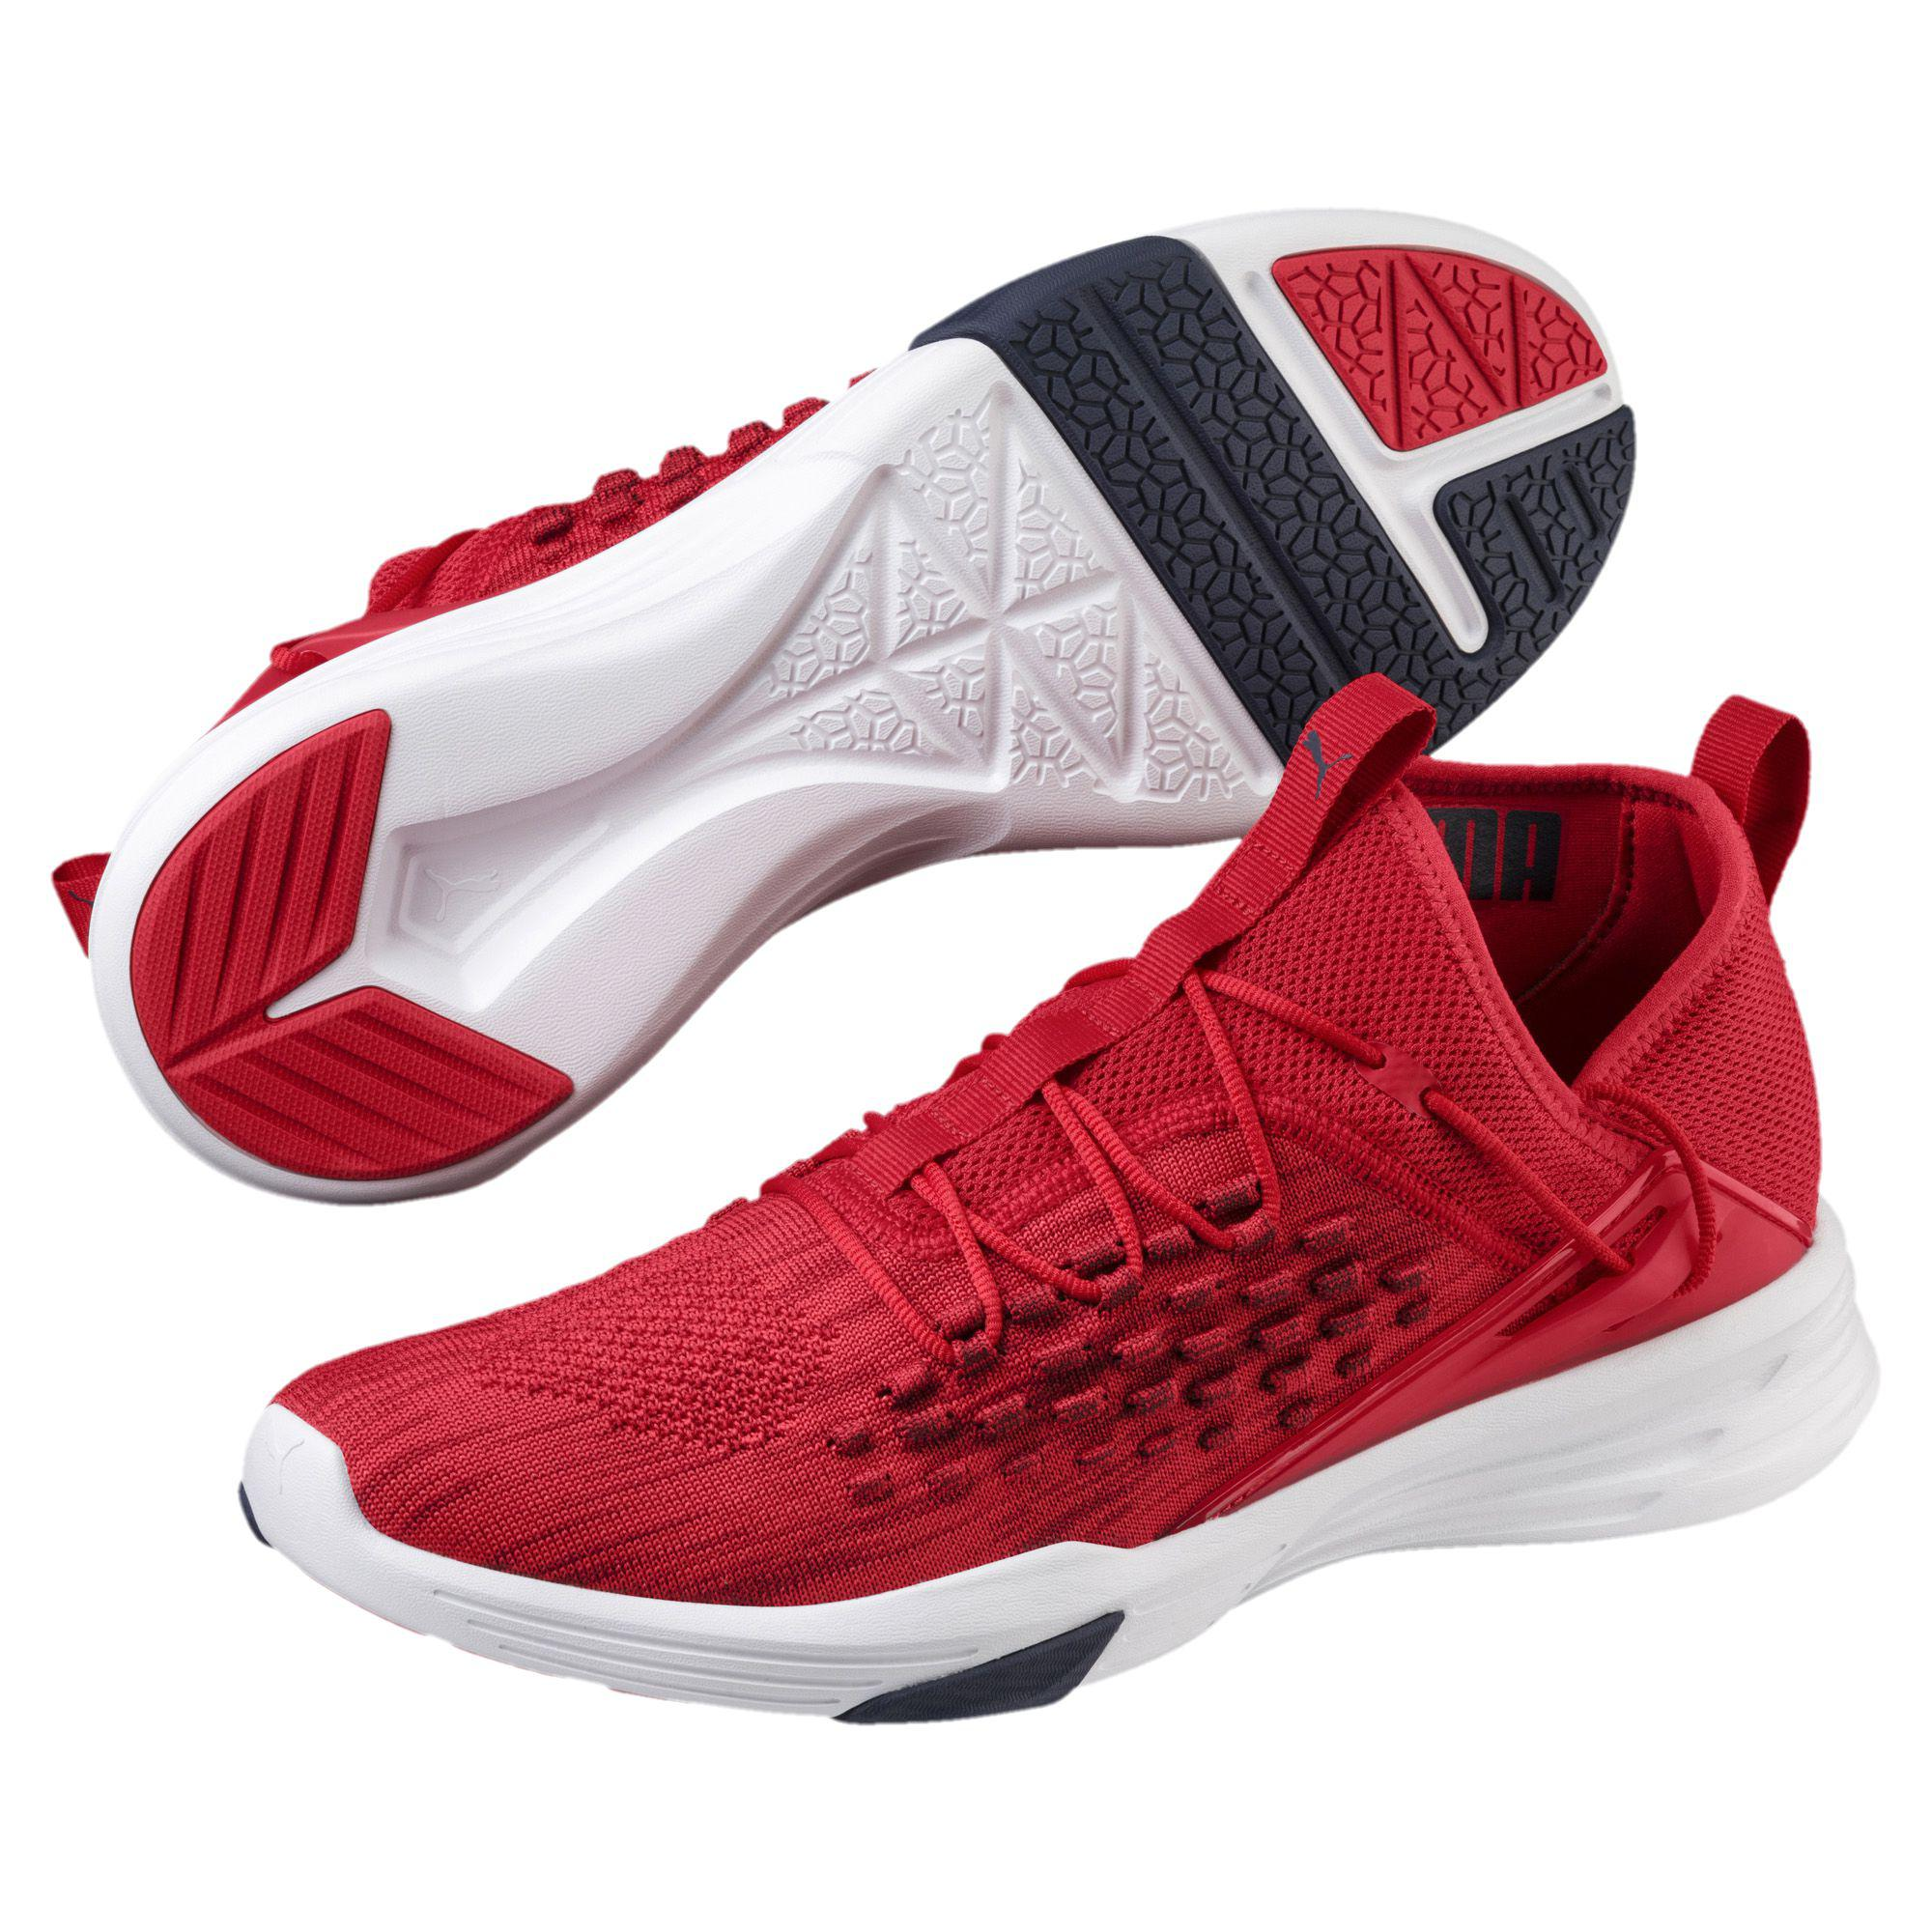 PUMA - Red Mantra Fusefit Men s Sneakers for Men - Lyst. View fullscreen 540387b5d